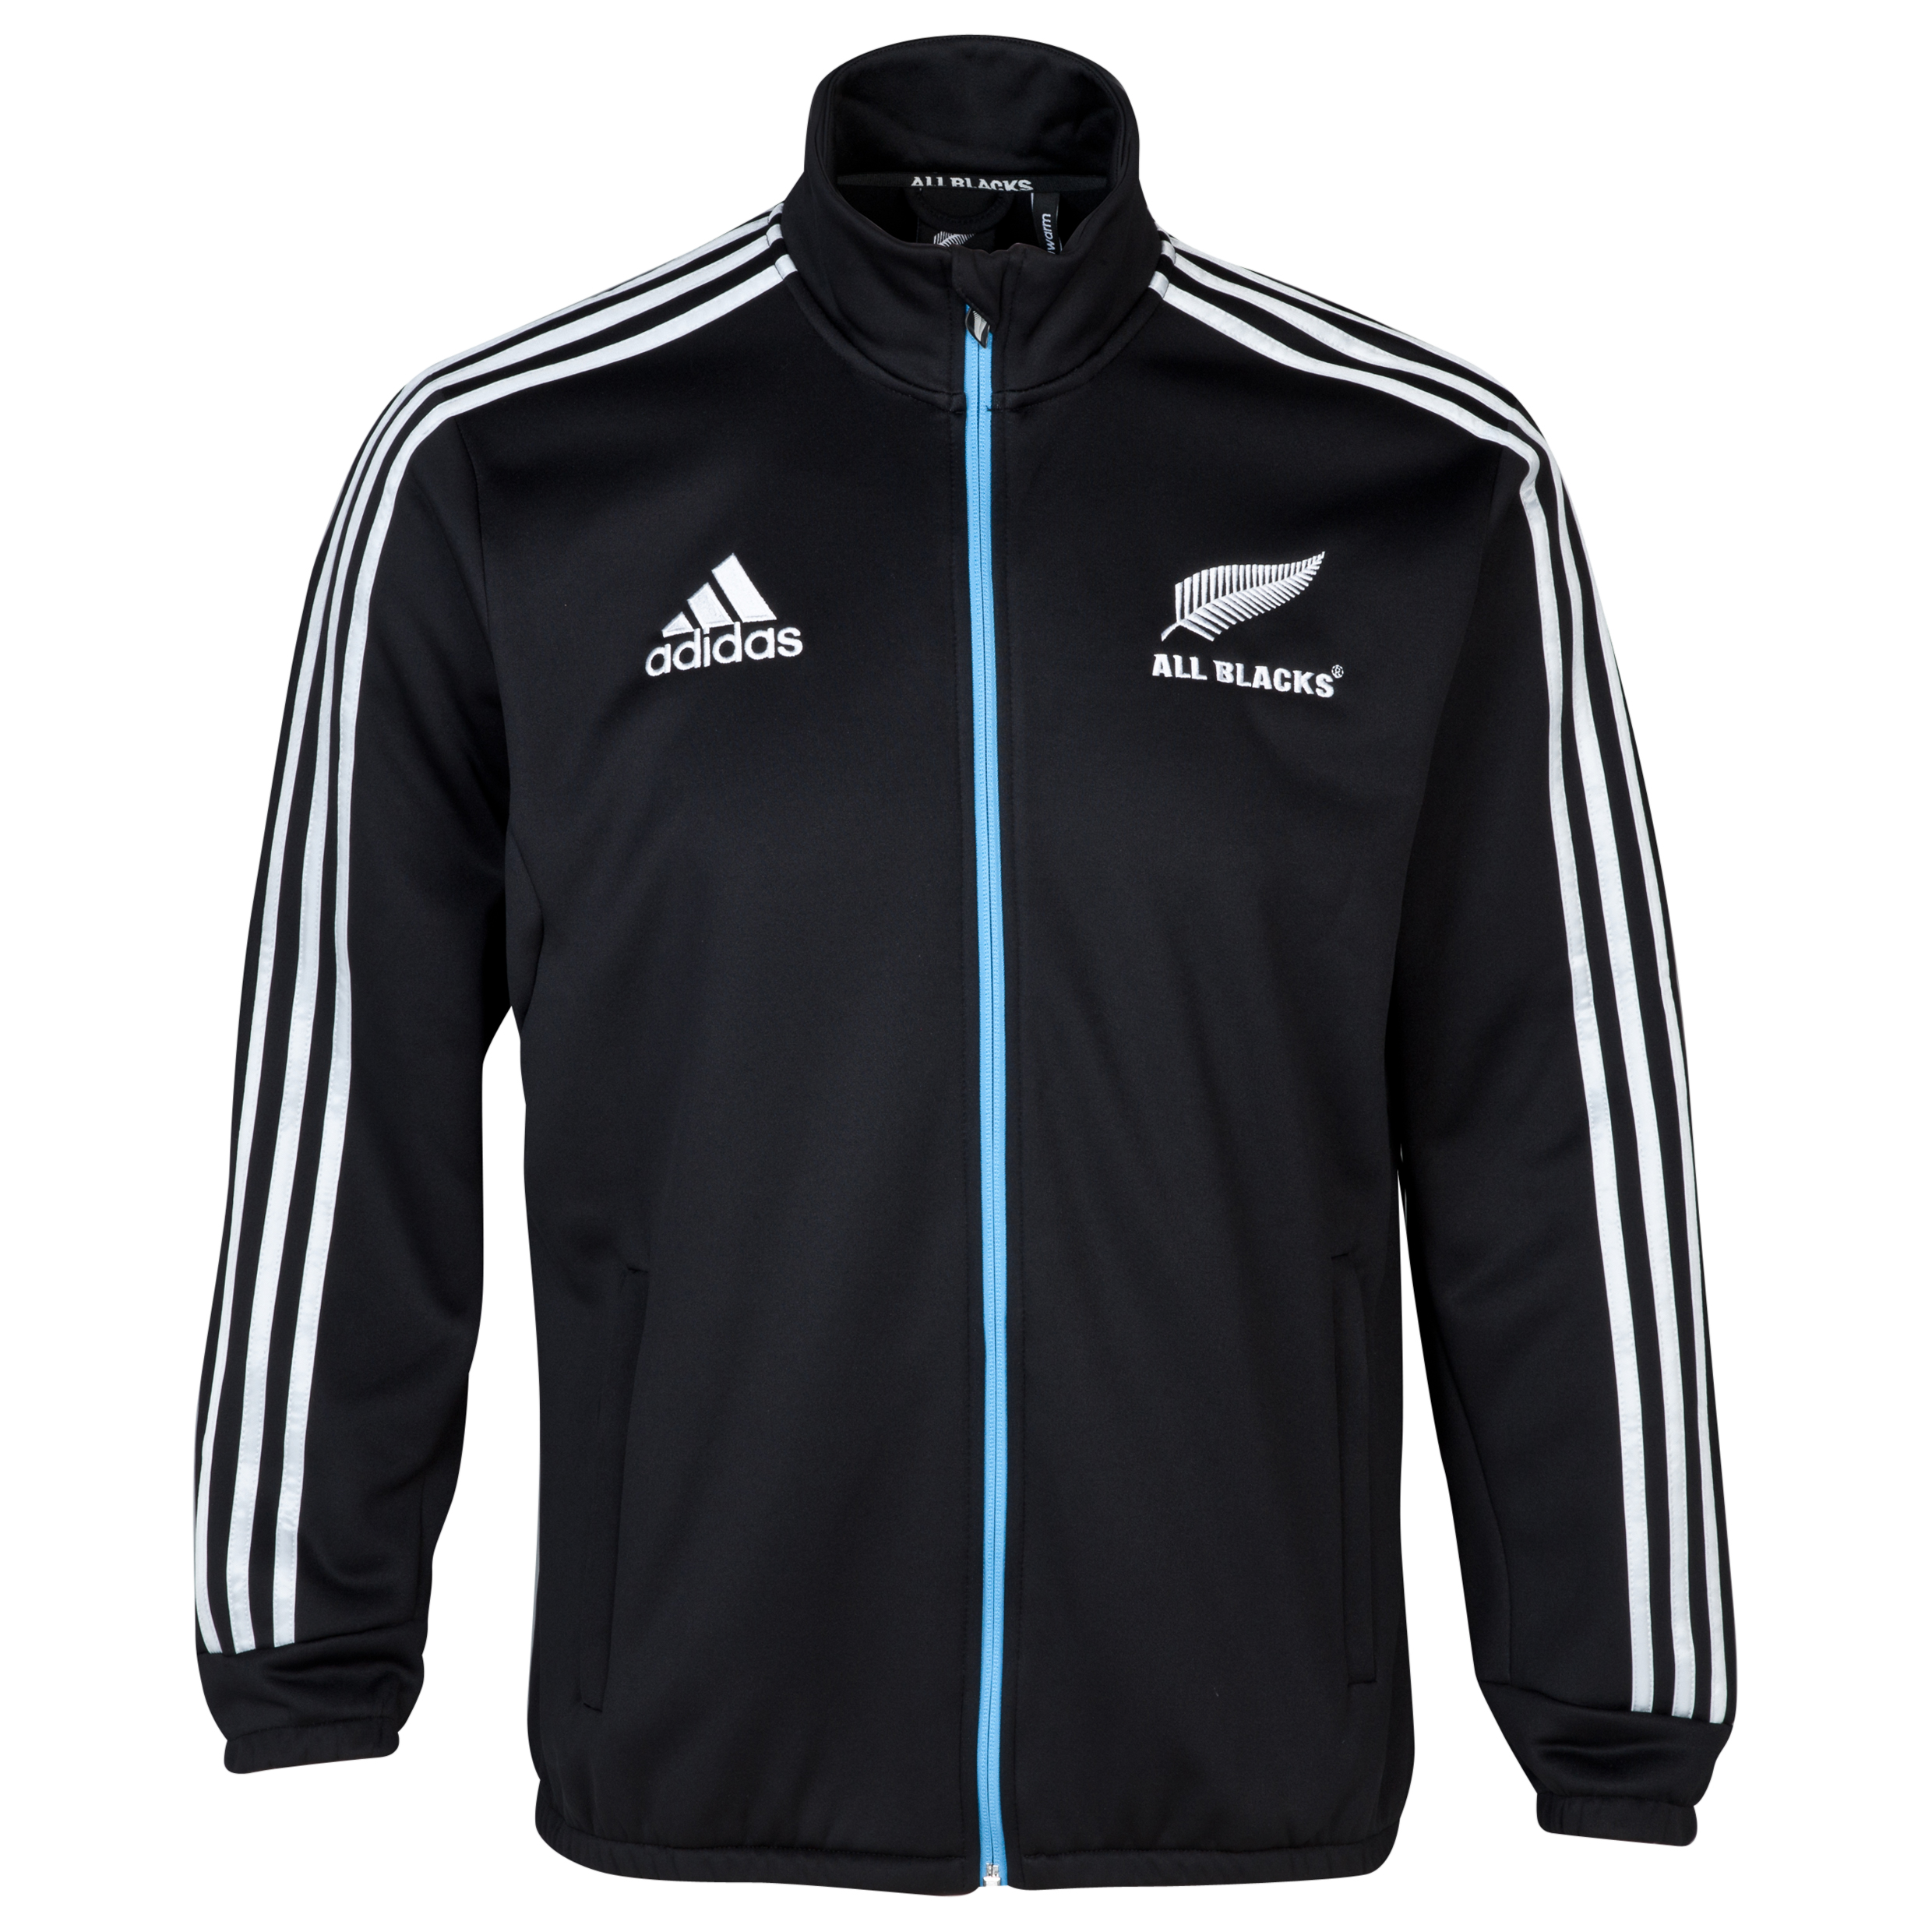 All Blacks Fleece Top - Black